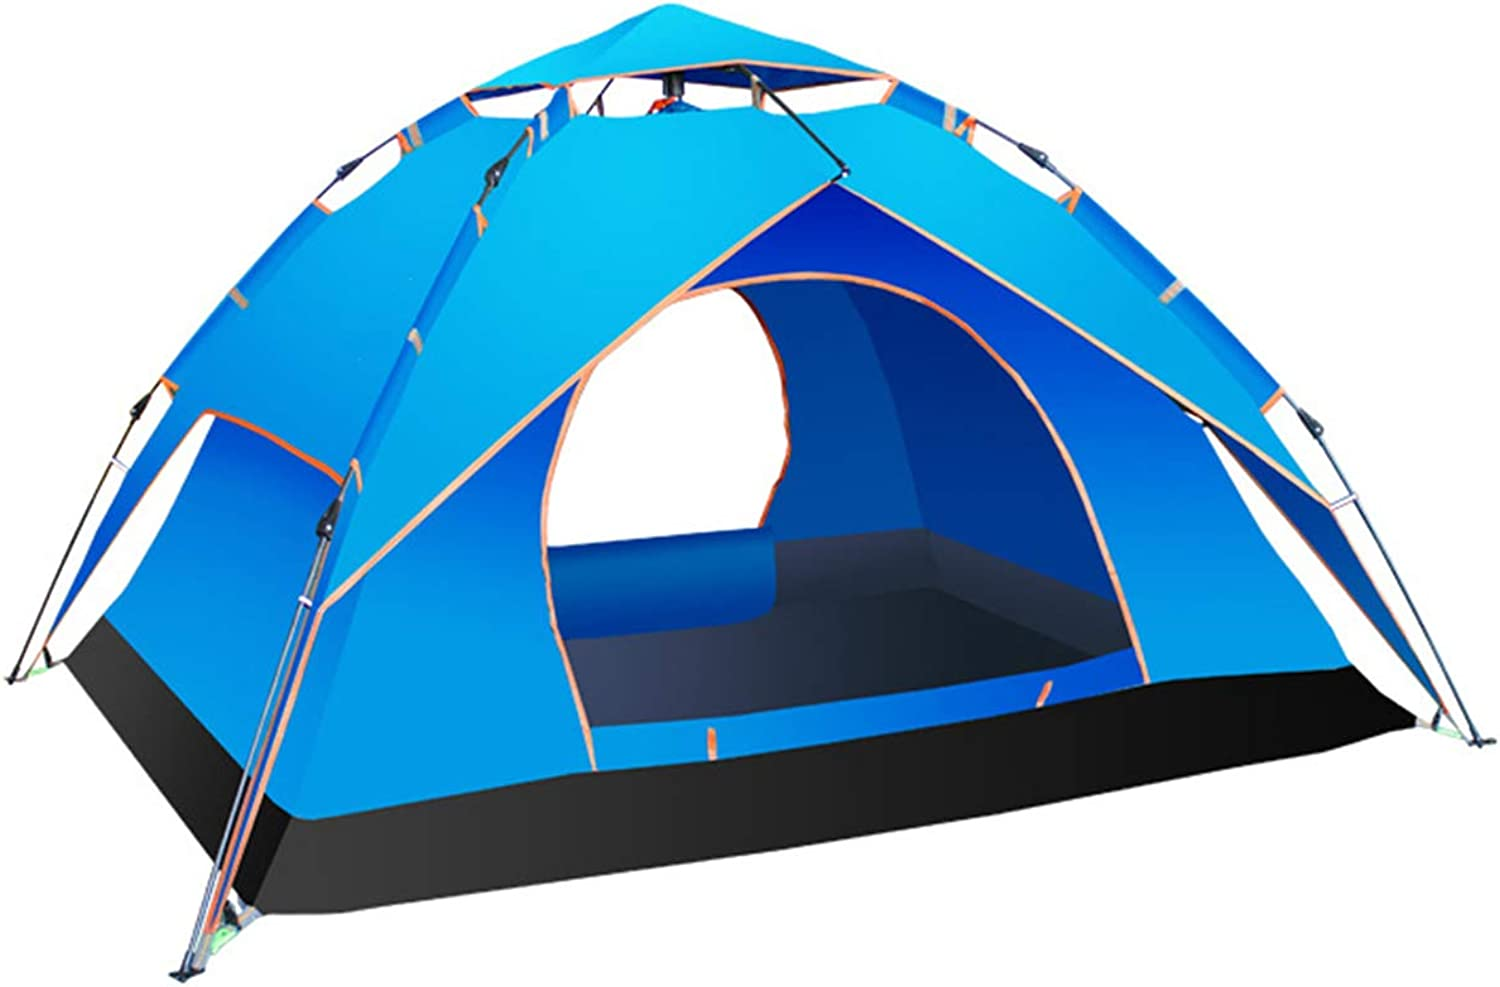 Outdoor Tent Double Layer Detachable Camping Double Camping Tent Easy to Setup and Foldable240210  135Cm